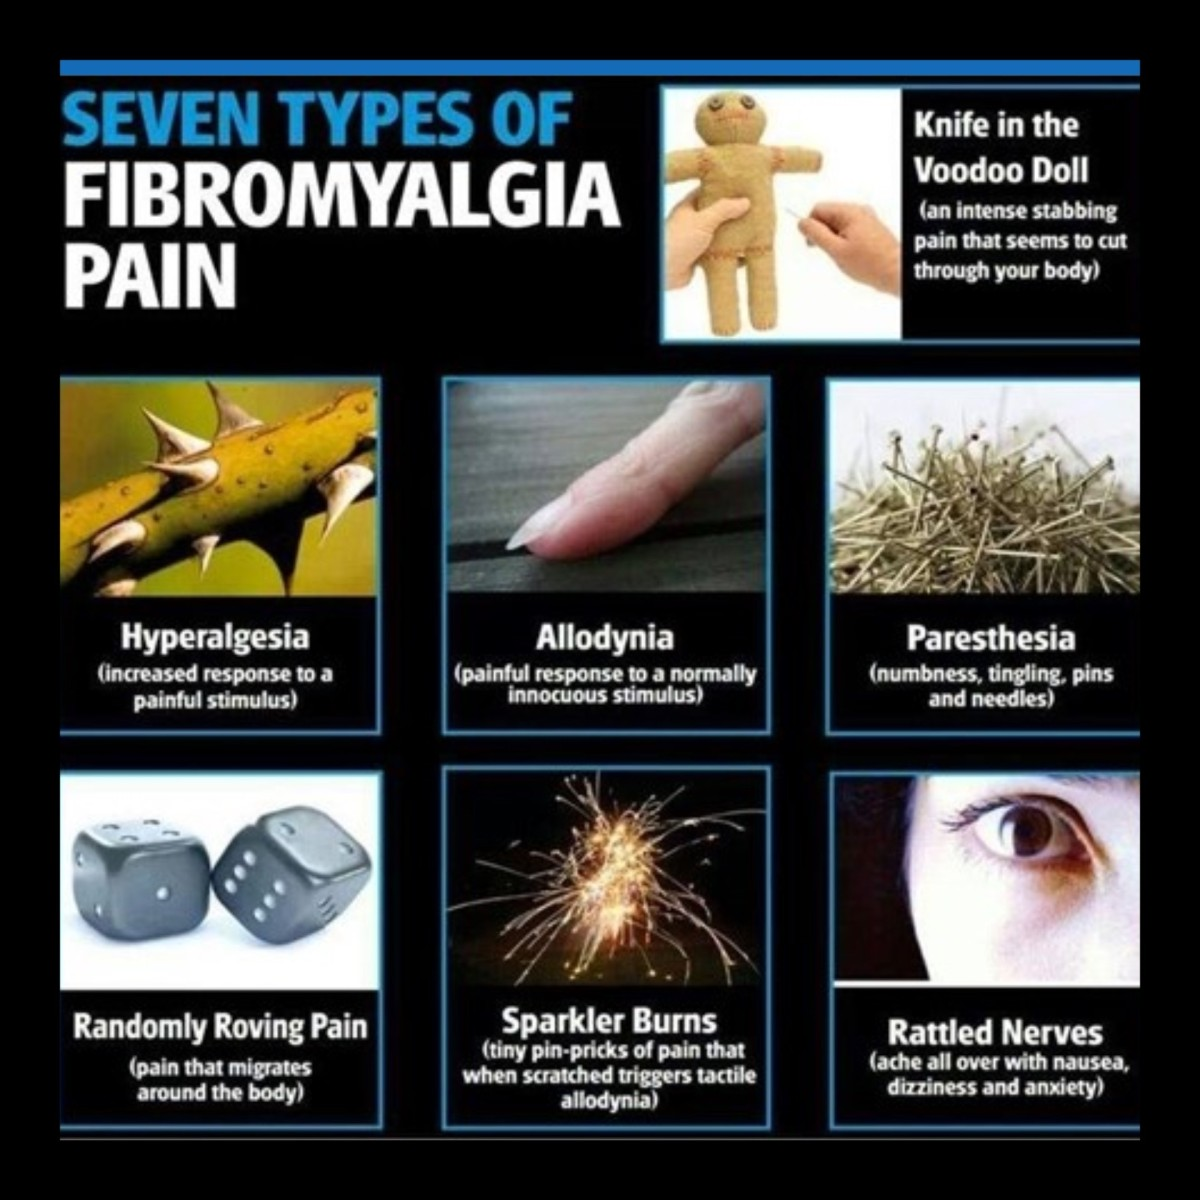 # PAM2018 | THE MEDICAL HISTORY OF FIBROMYALGIA | THE FIBROMYALGIA PAIN CHRONICLES | 12 September 2018